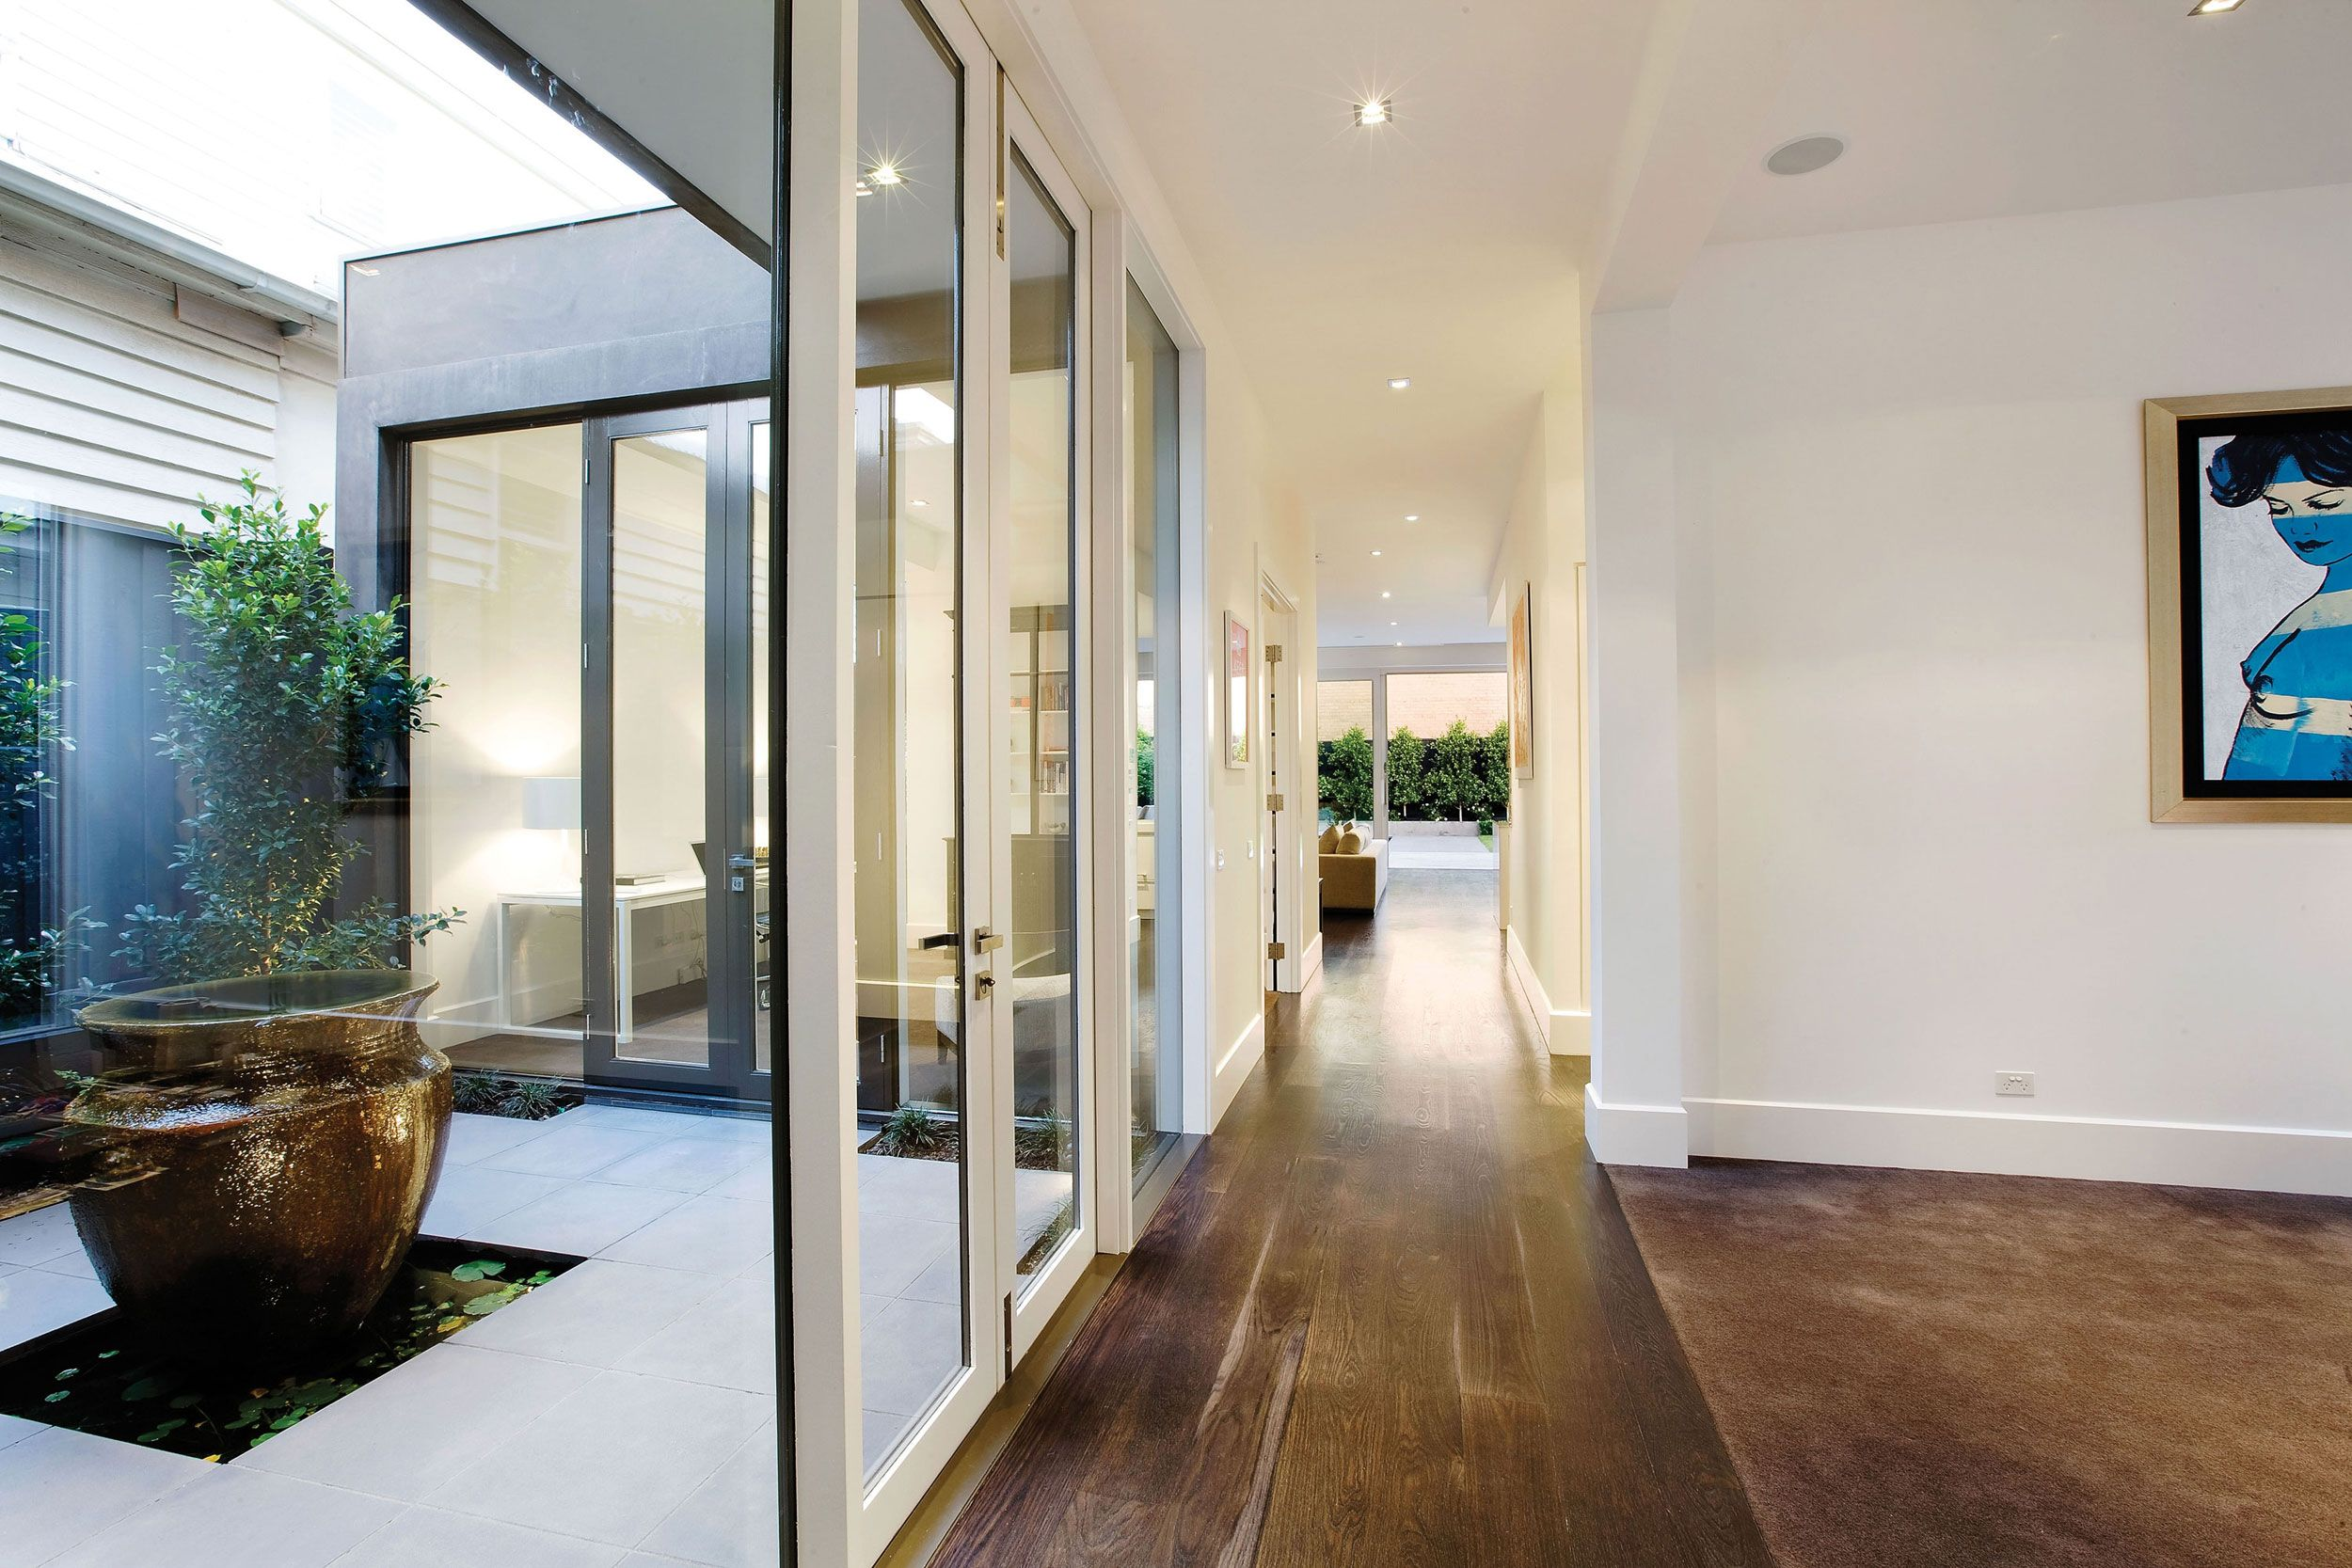 Floor for study armadale homes by canny custom home builders of contemporary and architecturally designed also light well new house pinterest open plan rh